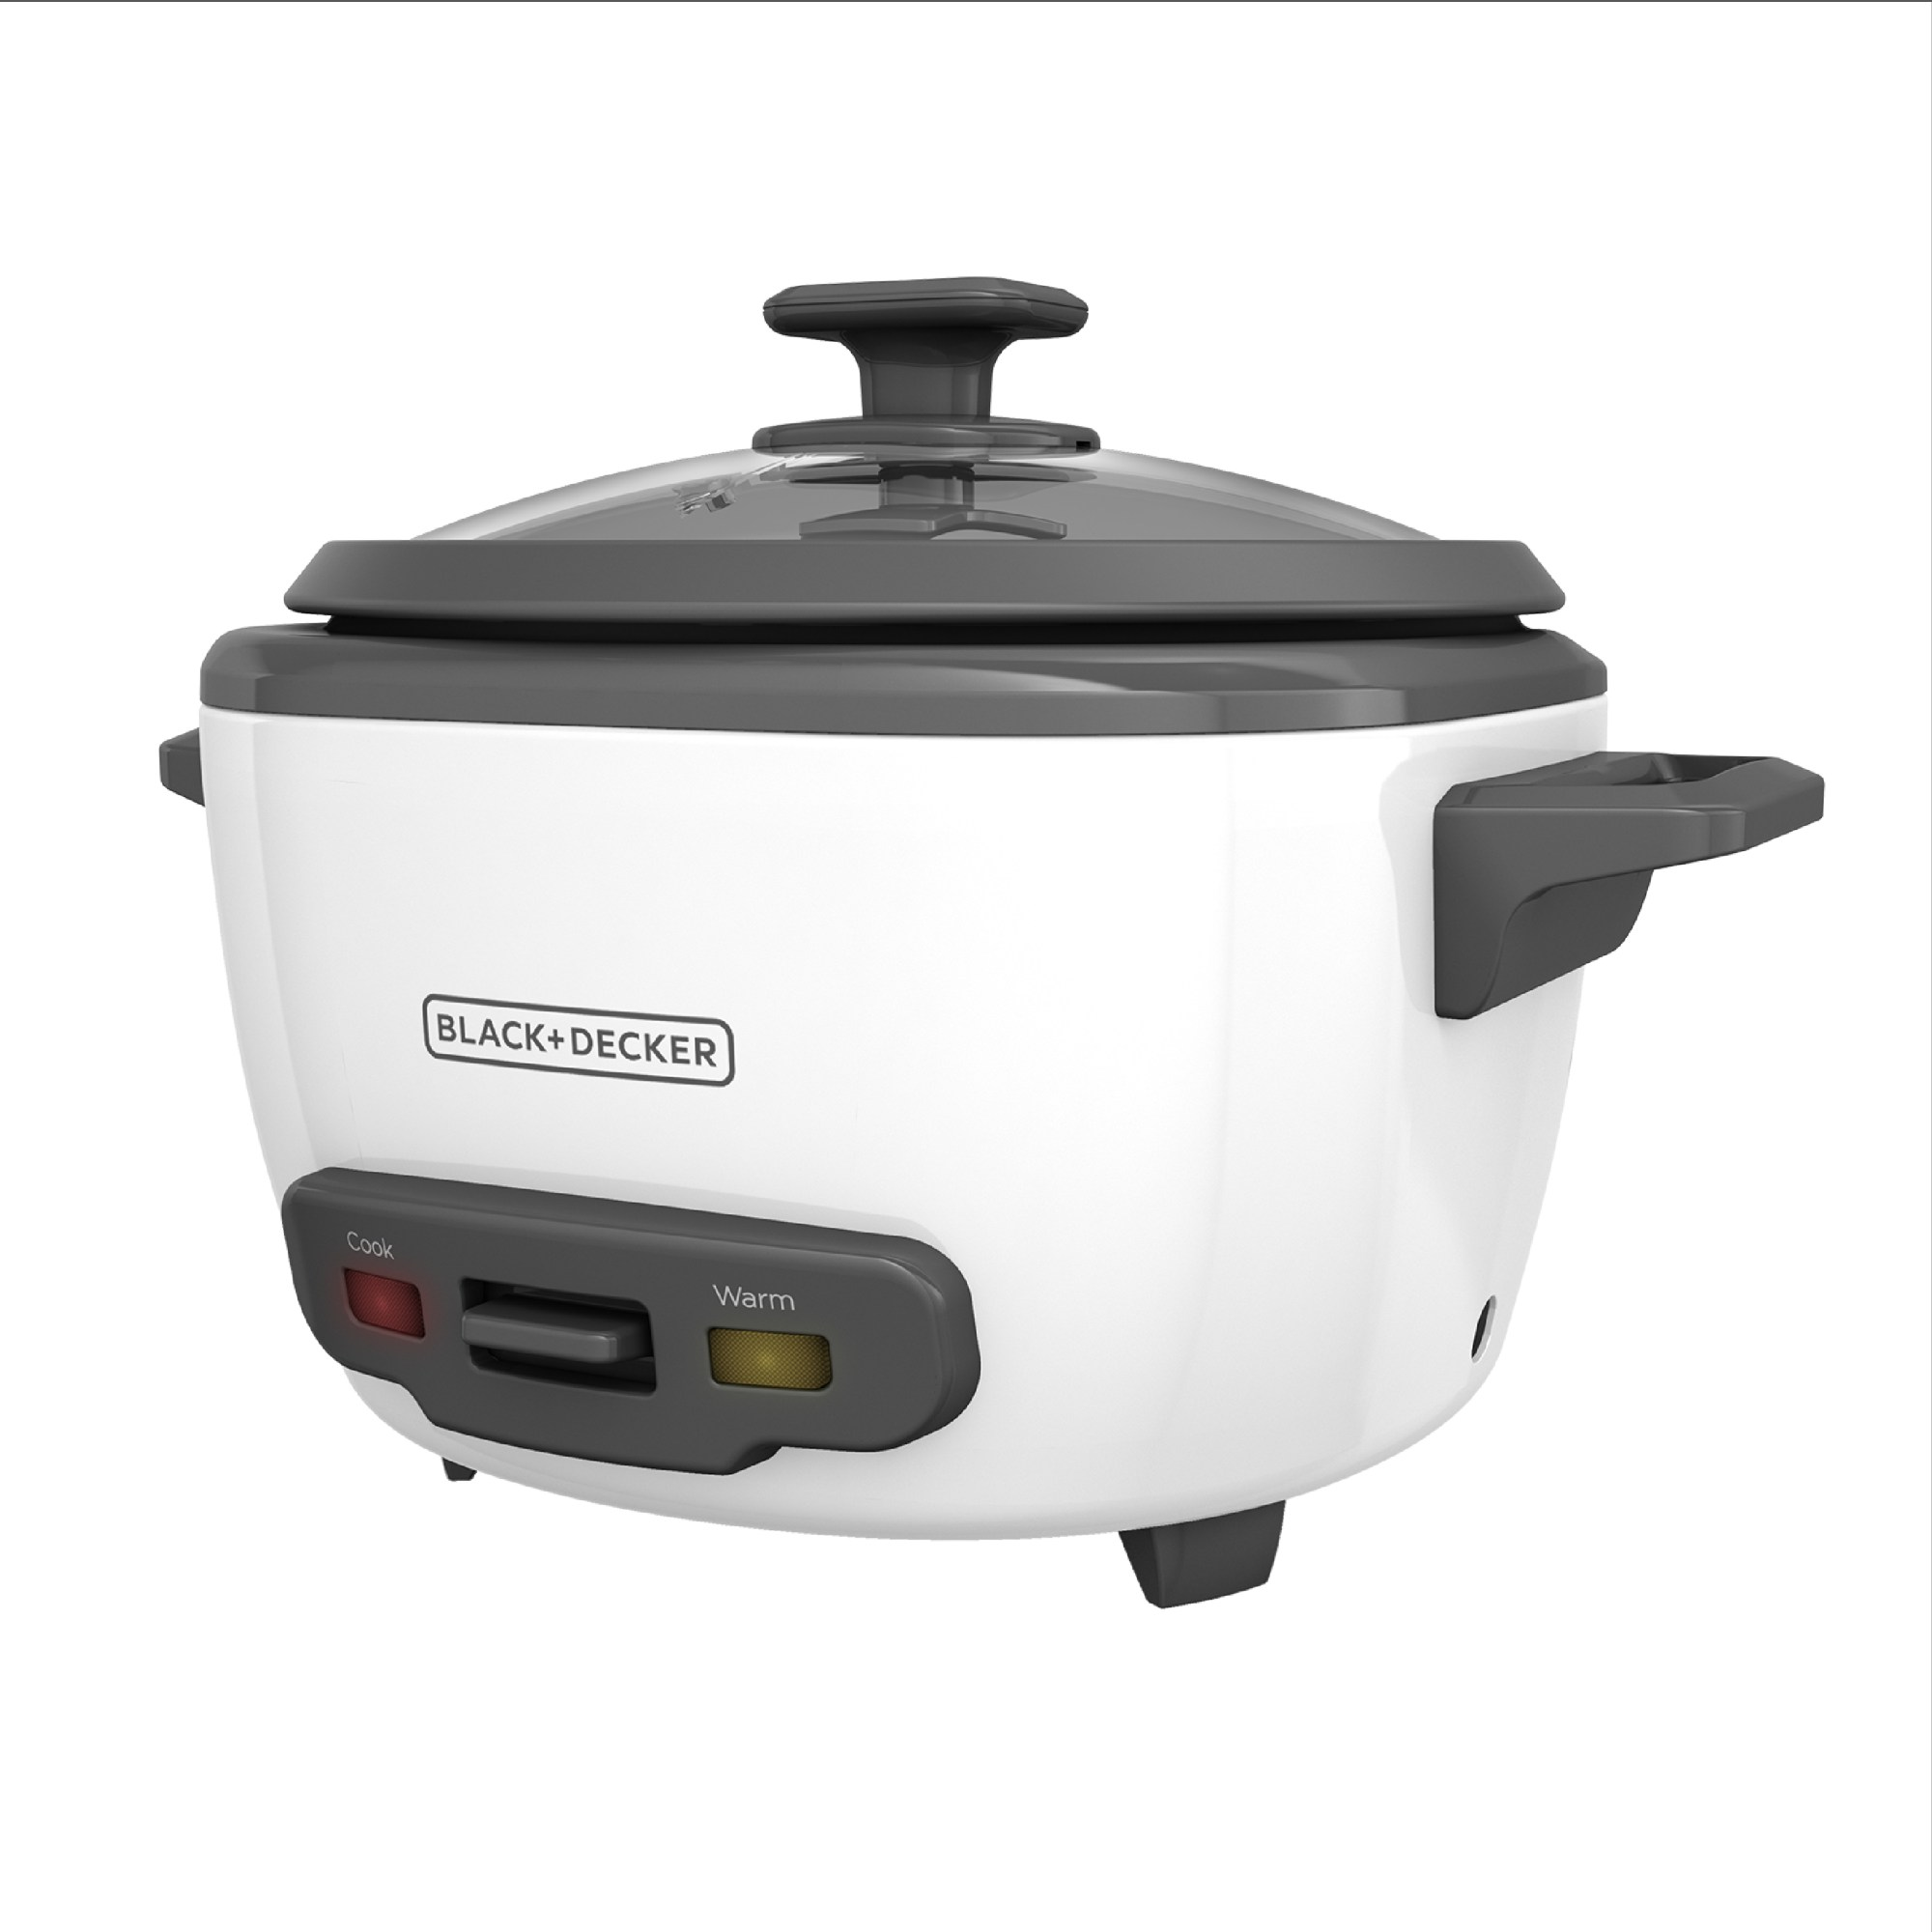 hight resolution of black decker 14 cup cooked 7 cup uncooked rice cooker and food steamer white rc514 walmart com